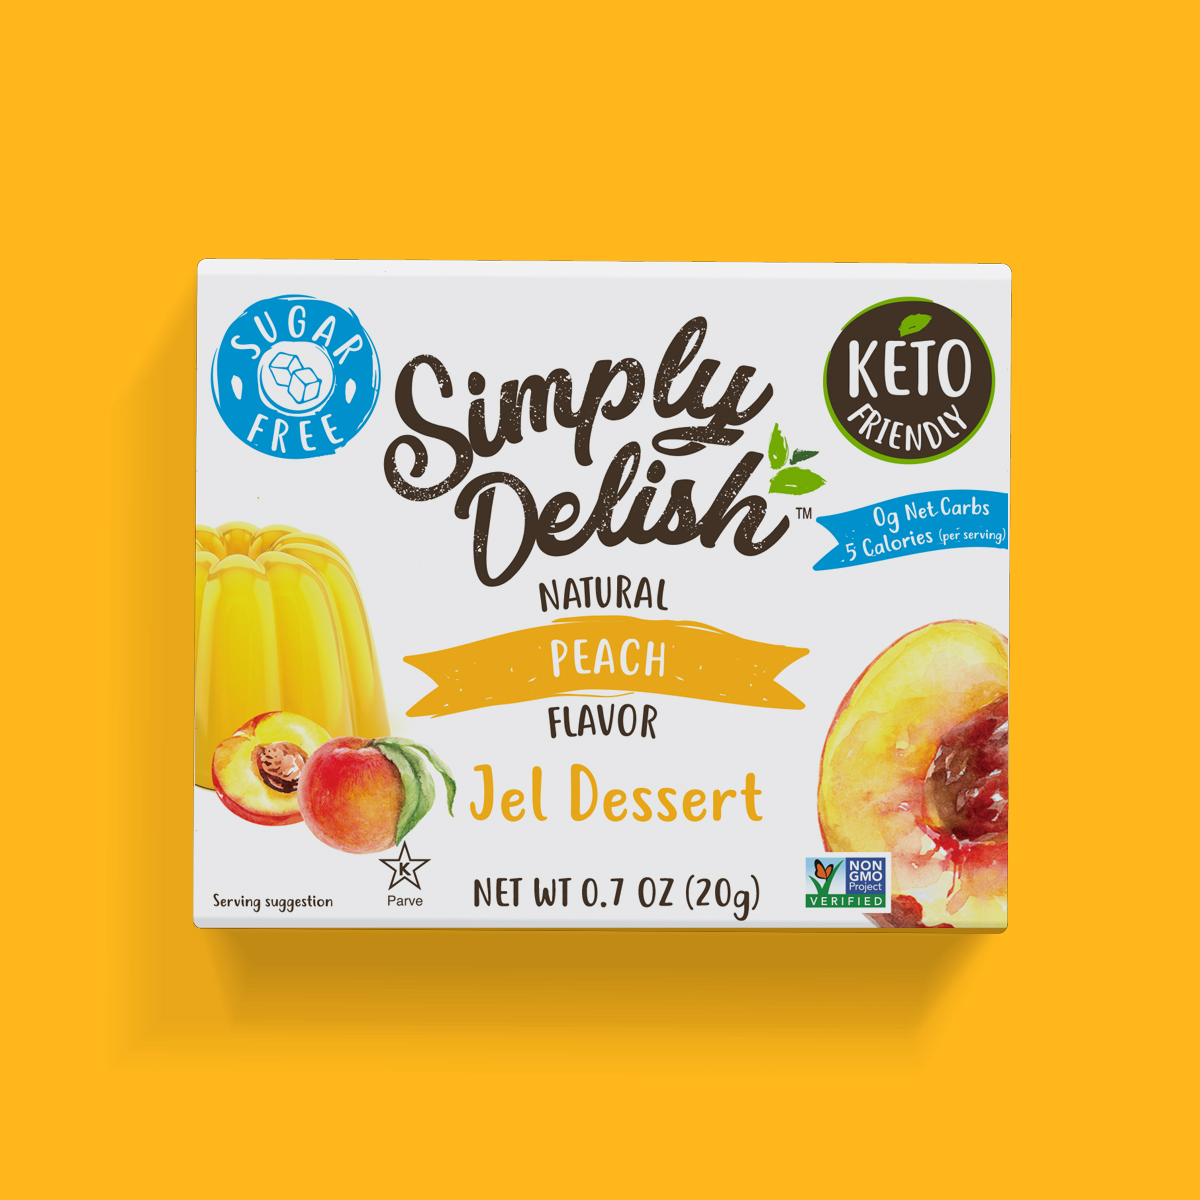 Simply Delish Keto Friendly Peach Jel